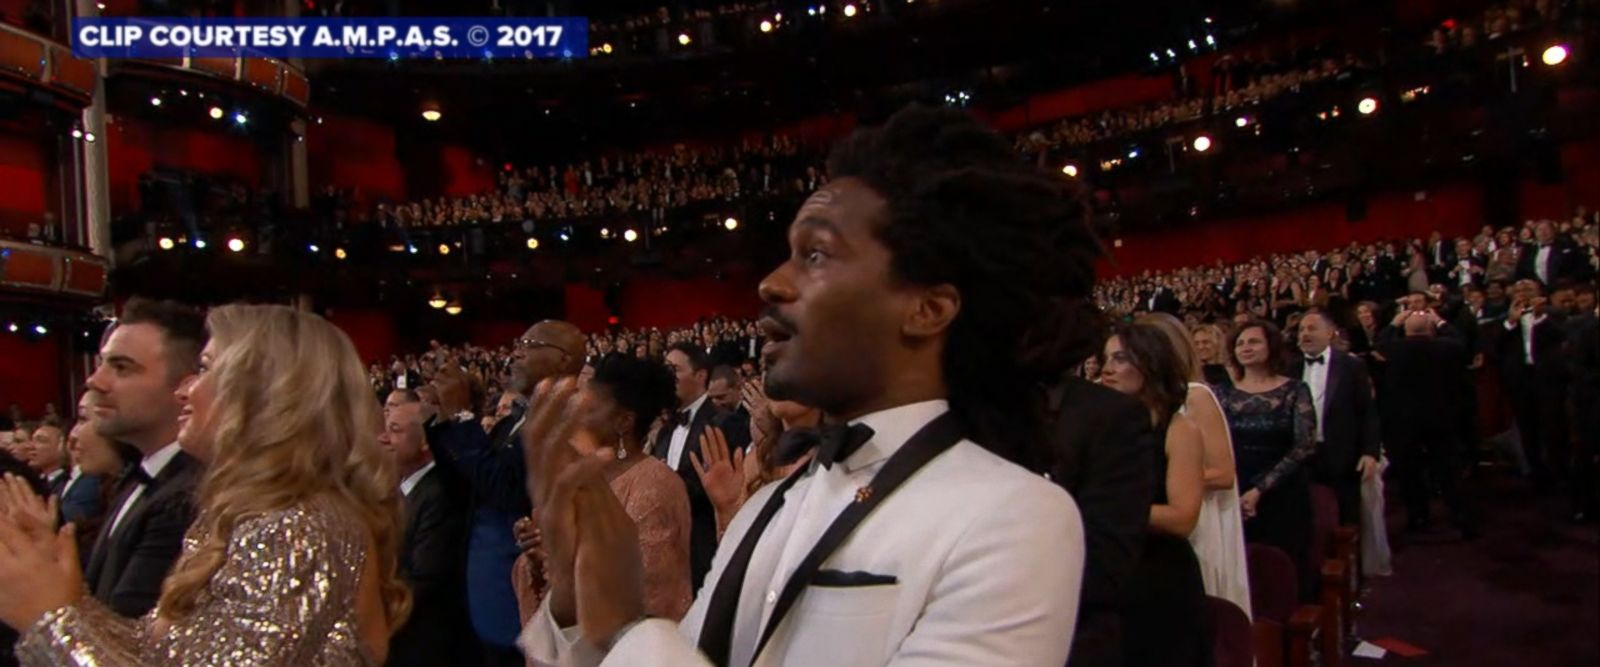 They stood there with their mouths agape, confused at how 'La La Land' could have been named 'Best Picture' when 'Moonlight' actually won - watch the stars react to the mistake during the 89th annual Academy Awards.